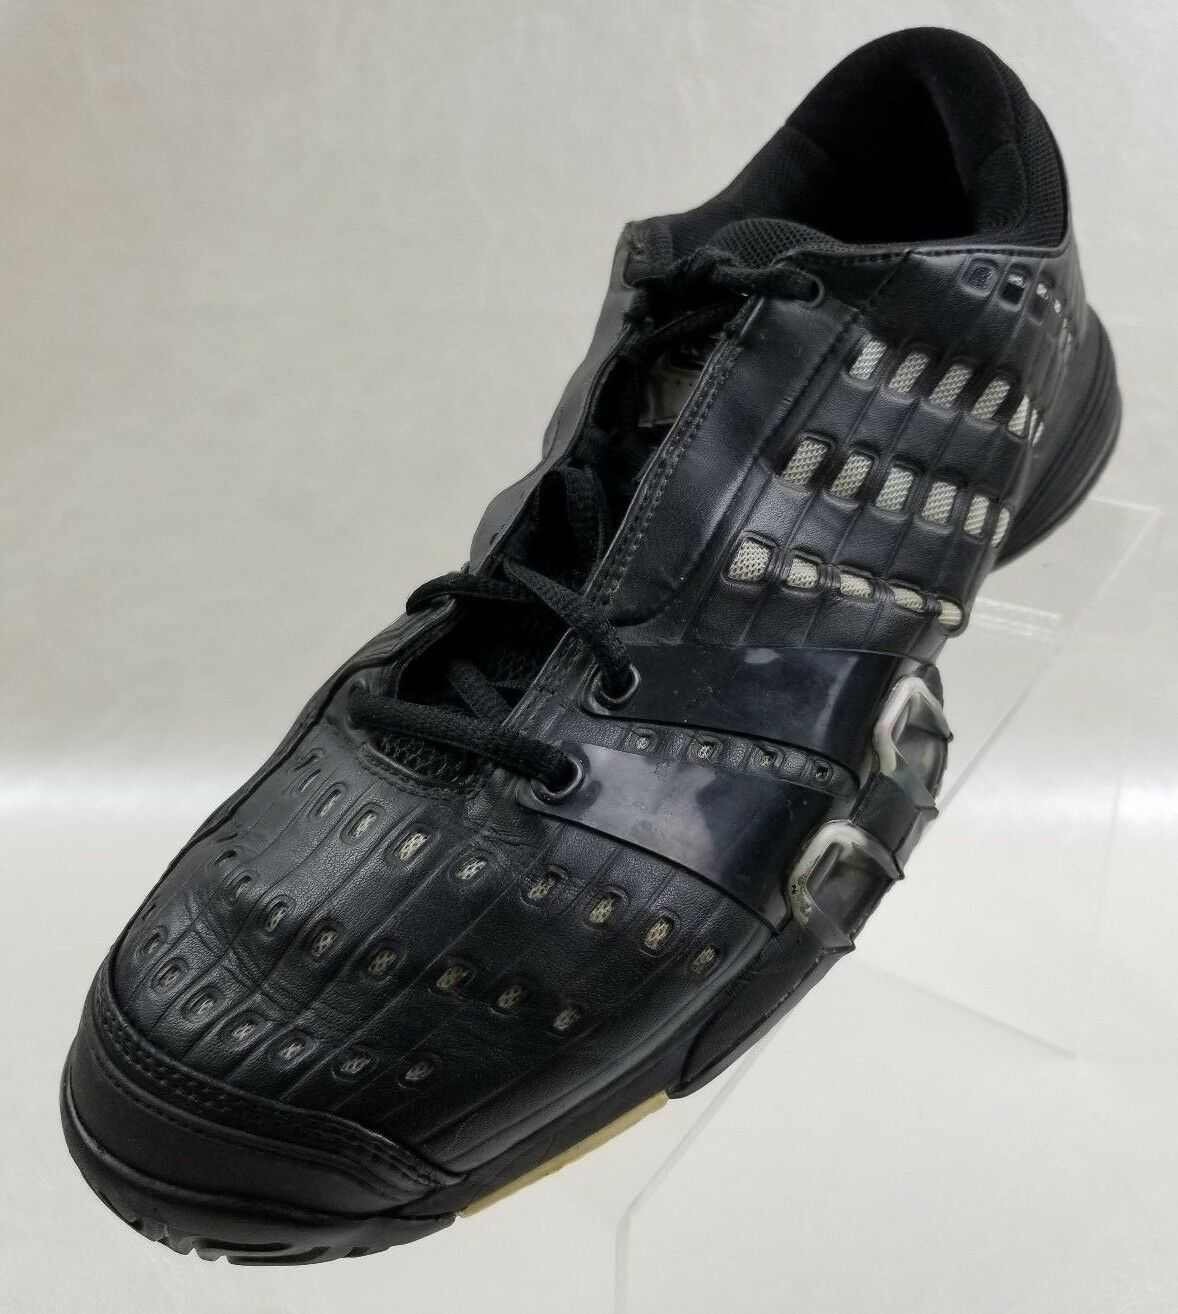 Adidas Sneakers 779001 Black Silver Clima Cool Ape Athletic Mens shoes Size 12